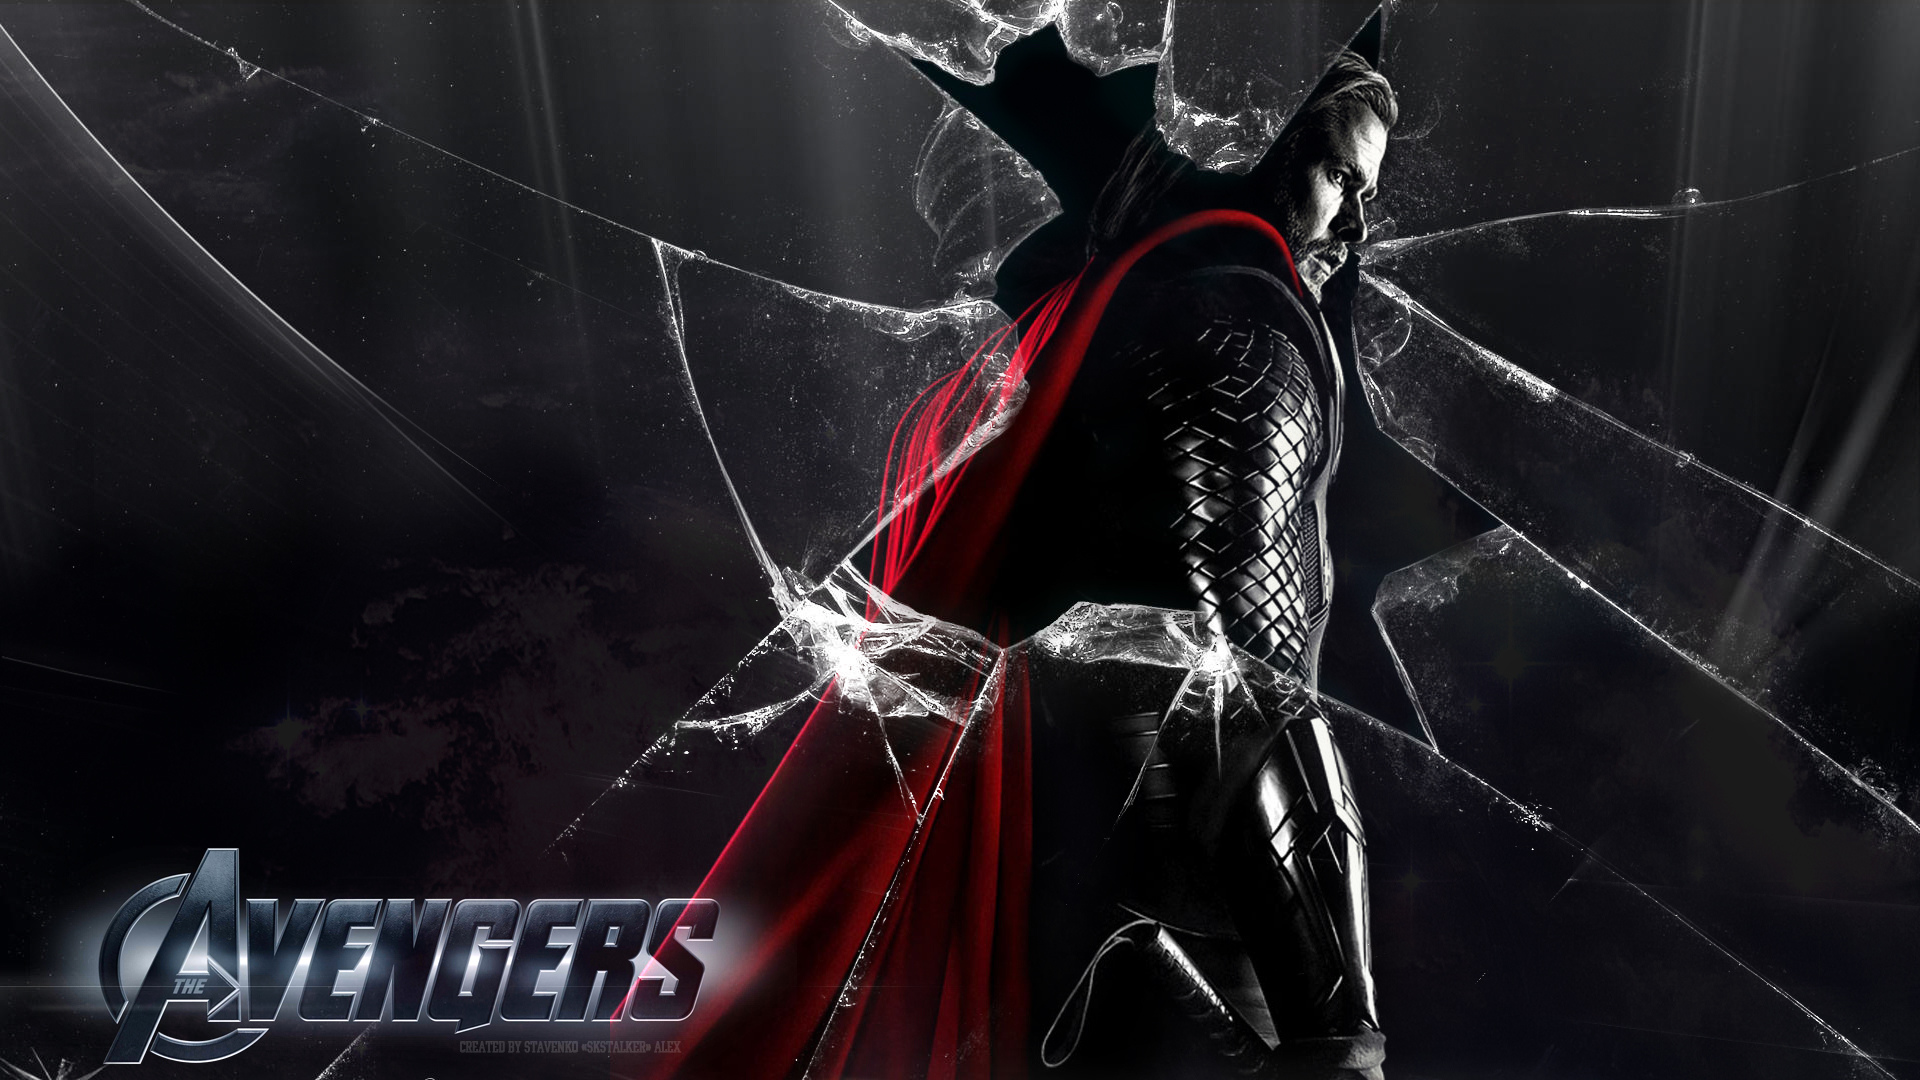 Thor hd wallpapers 35 wallpapers adorable wallpapers - Thor hammer hd pics ...